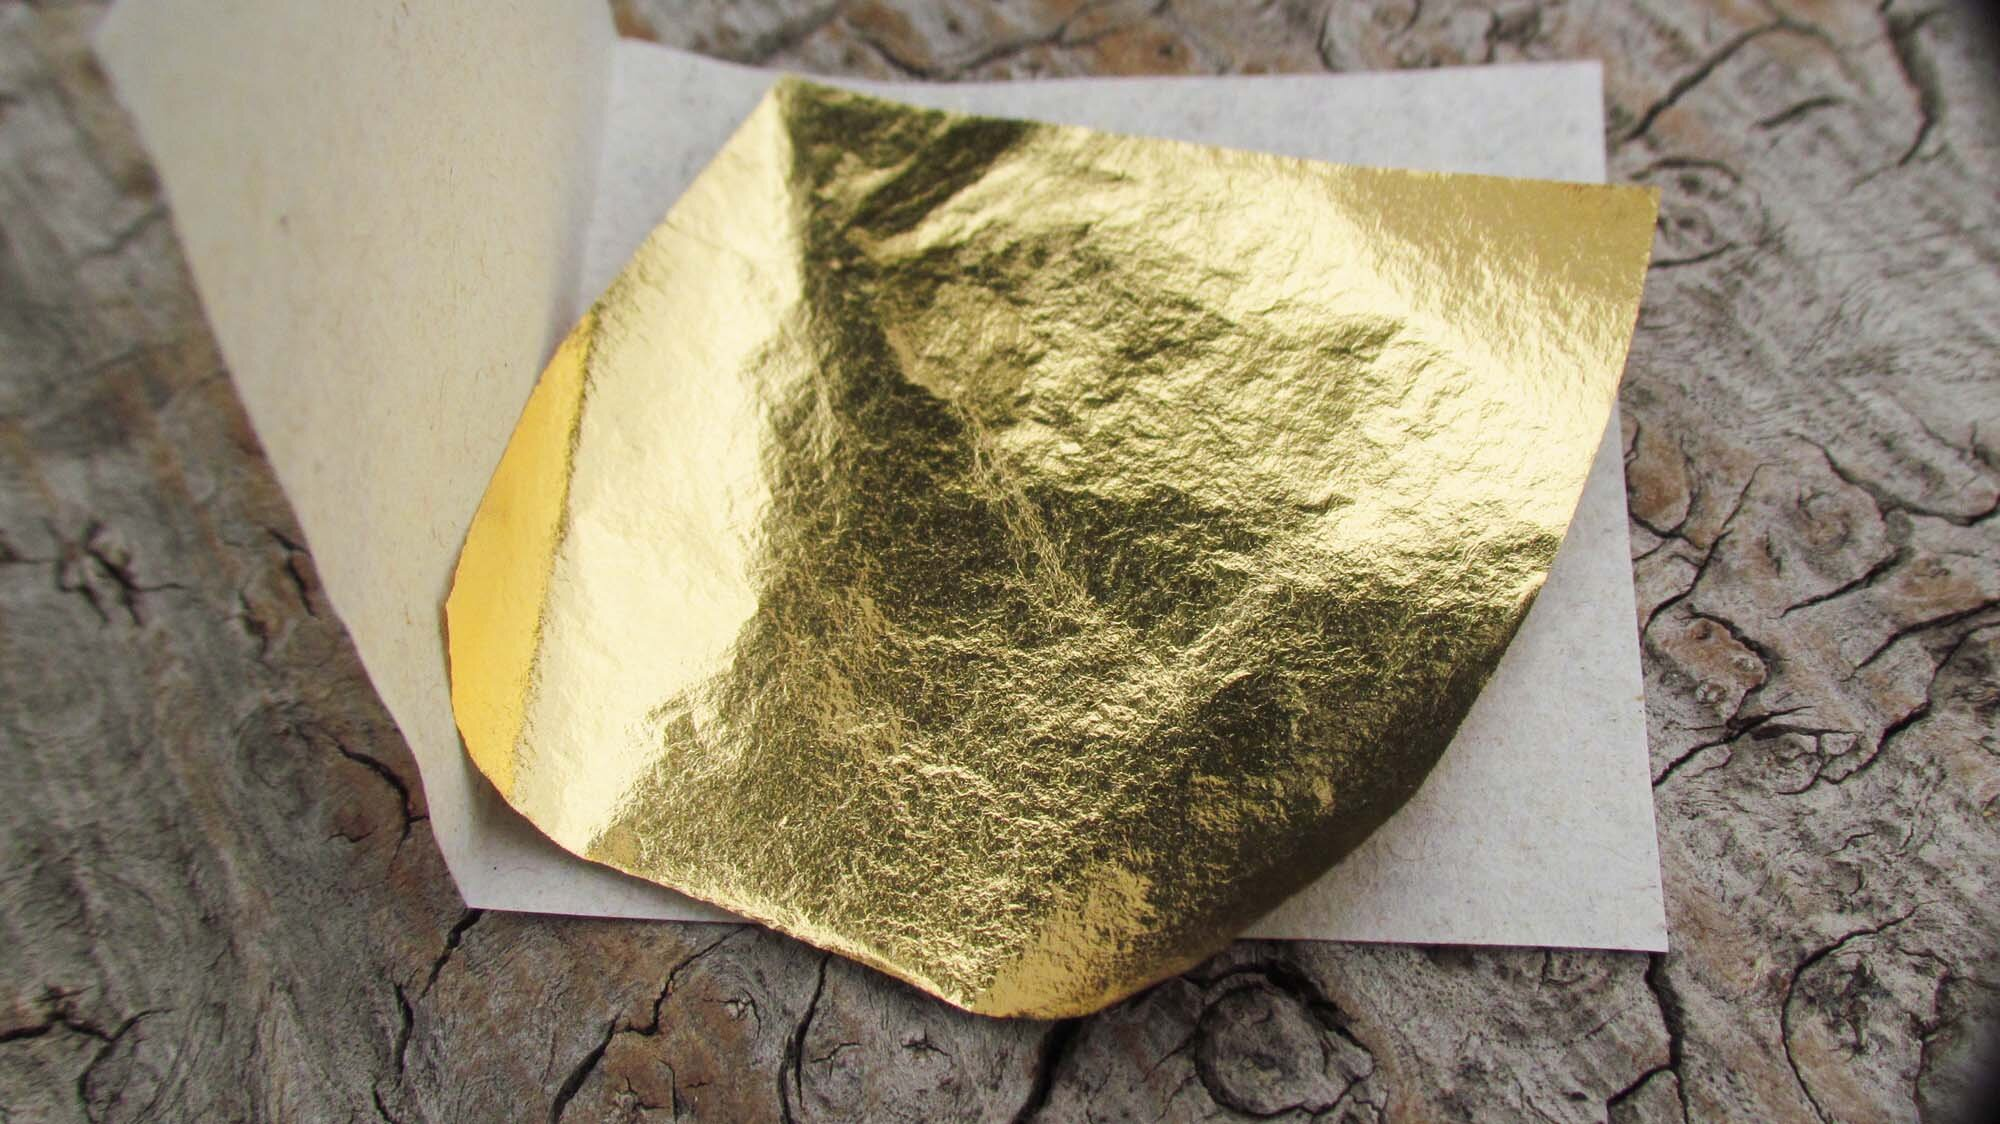 22 carat Gold leaf - The gold leaf sheet is set into a glass like resin and then polished to a deep sparkling gloss.